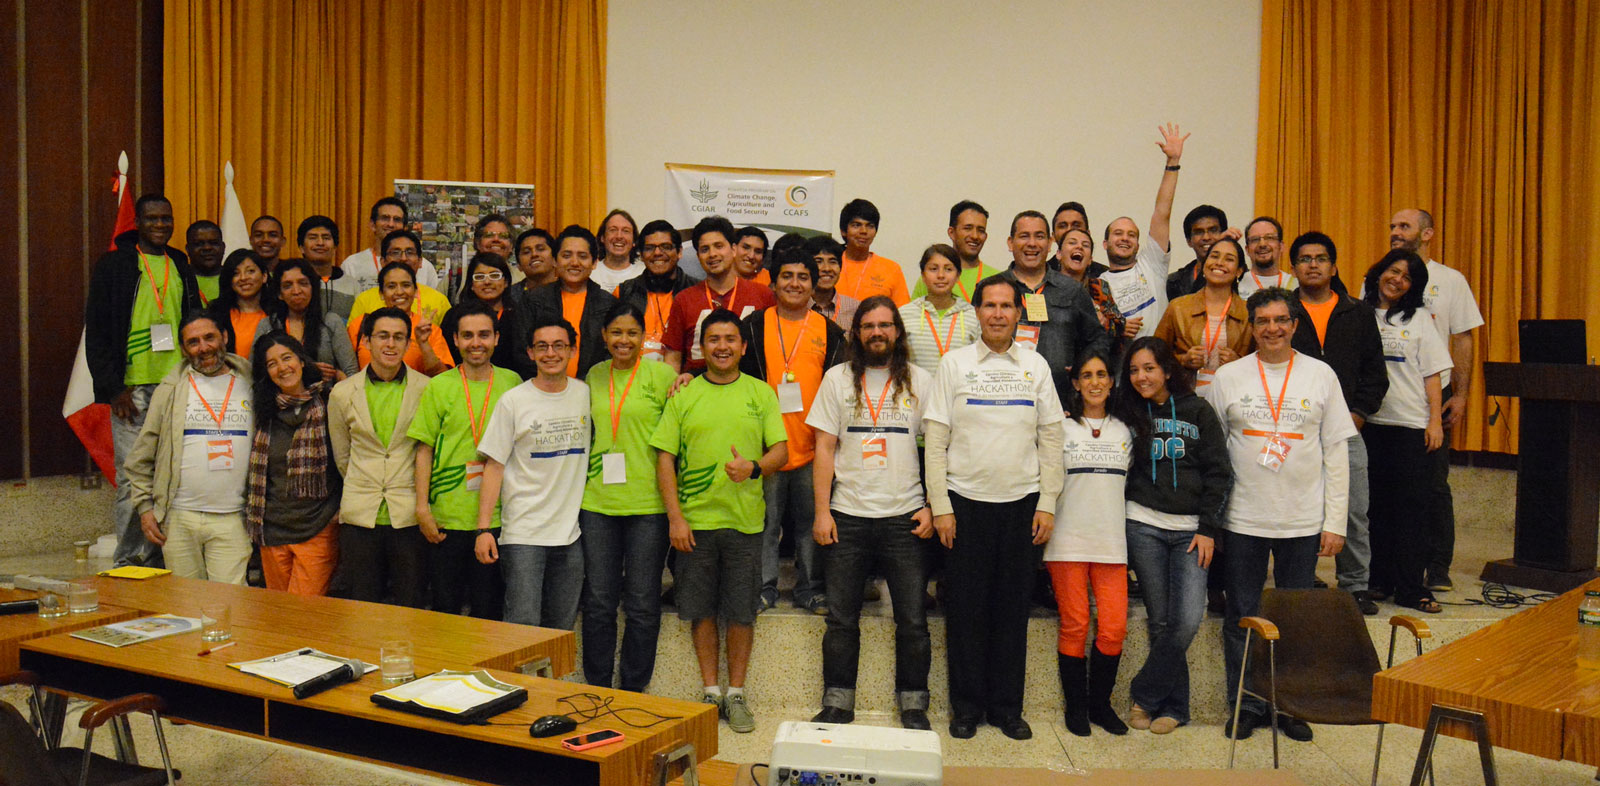 Hackathon programmers and designers hatched innovative solutions to feed the world during an event at COP20 in Lima, Peru